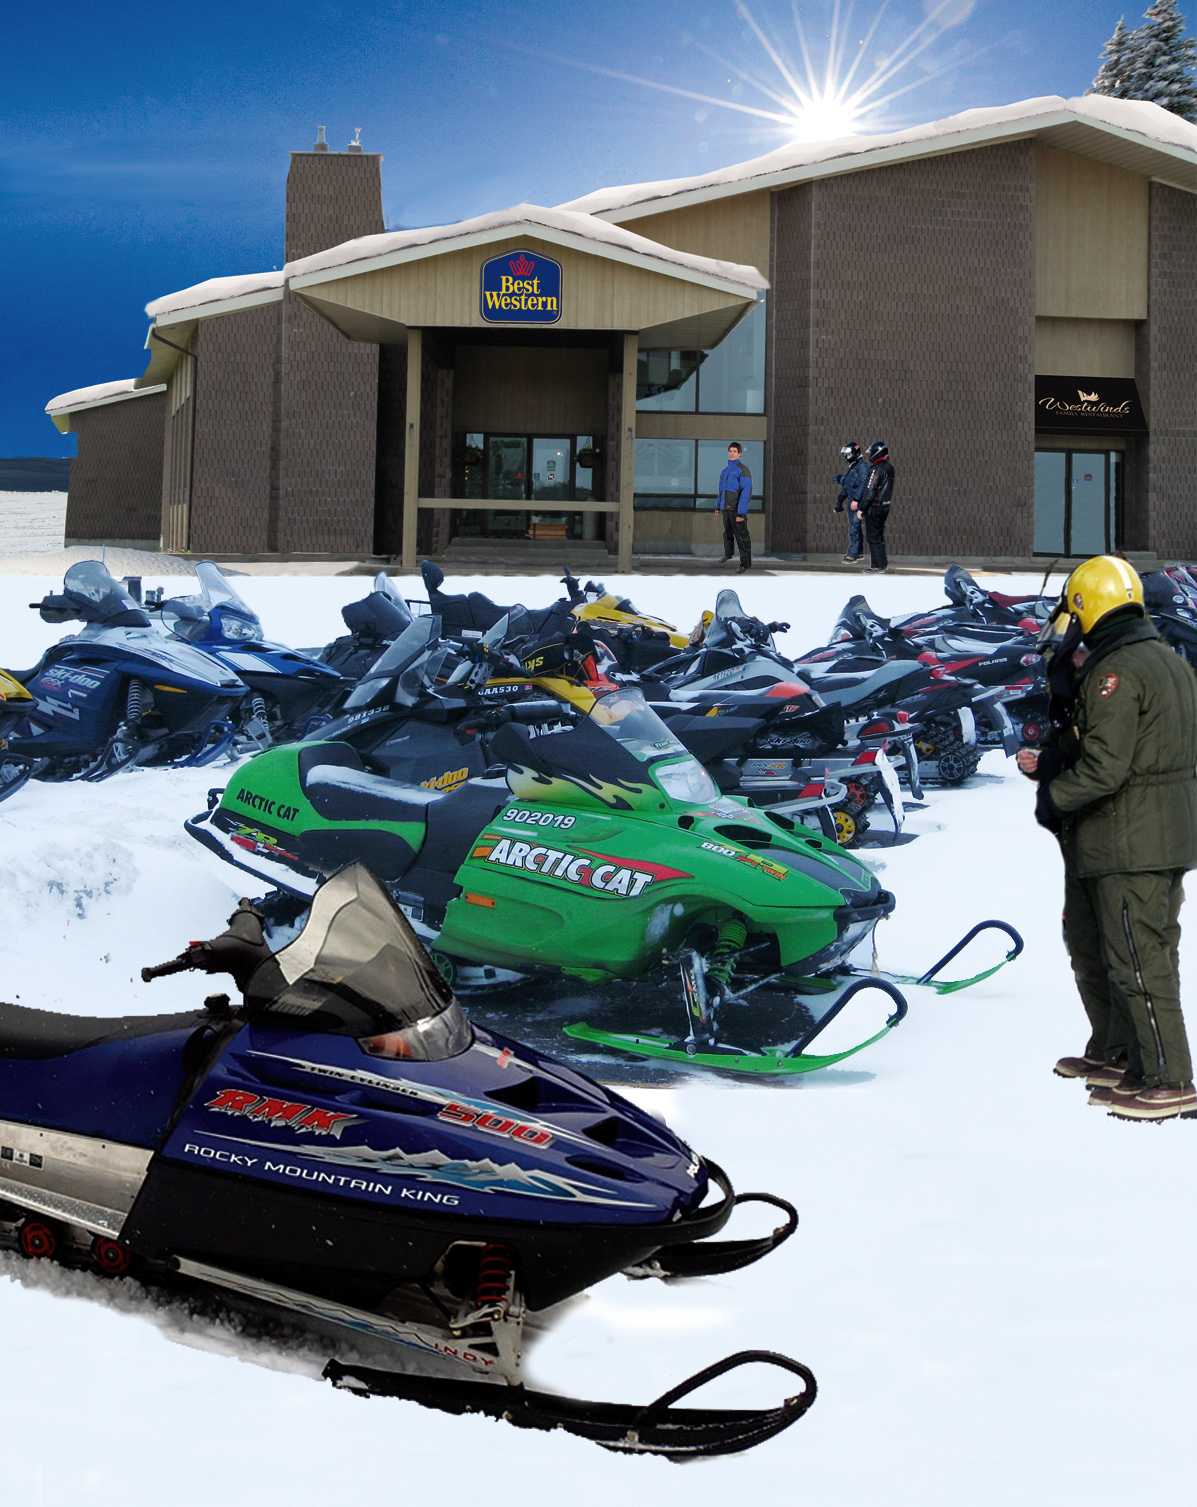 ad snowmobile v2 13 2SMALLER